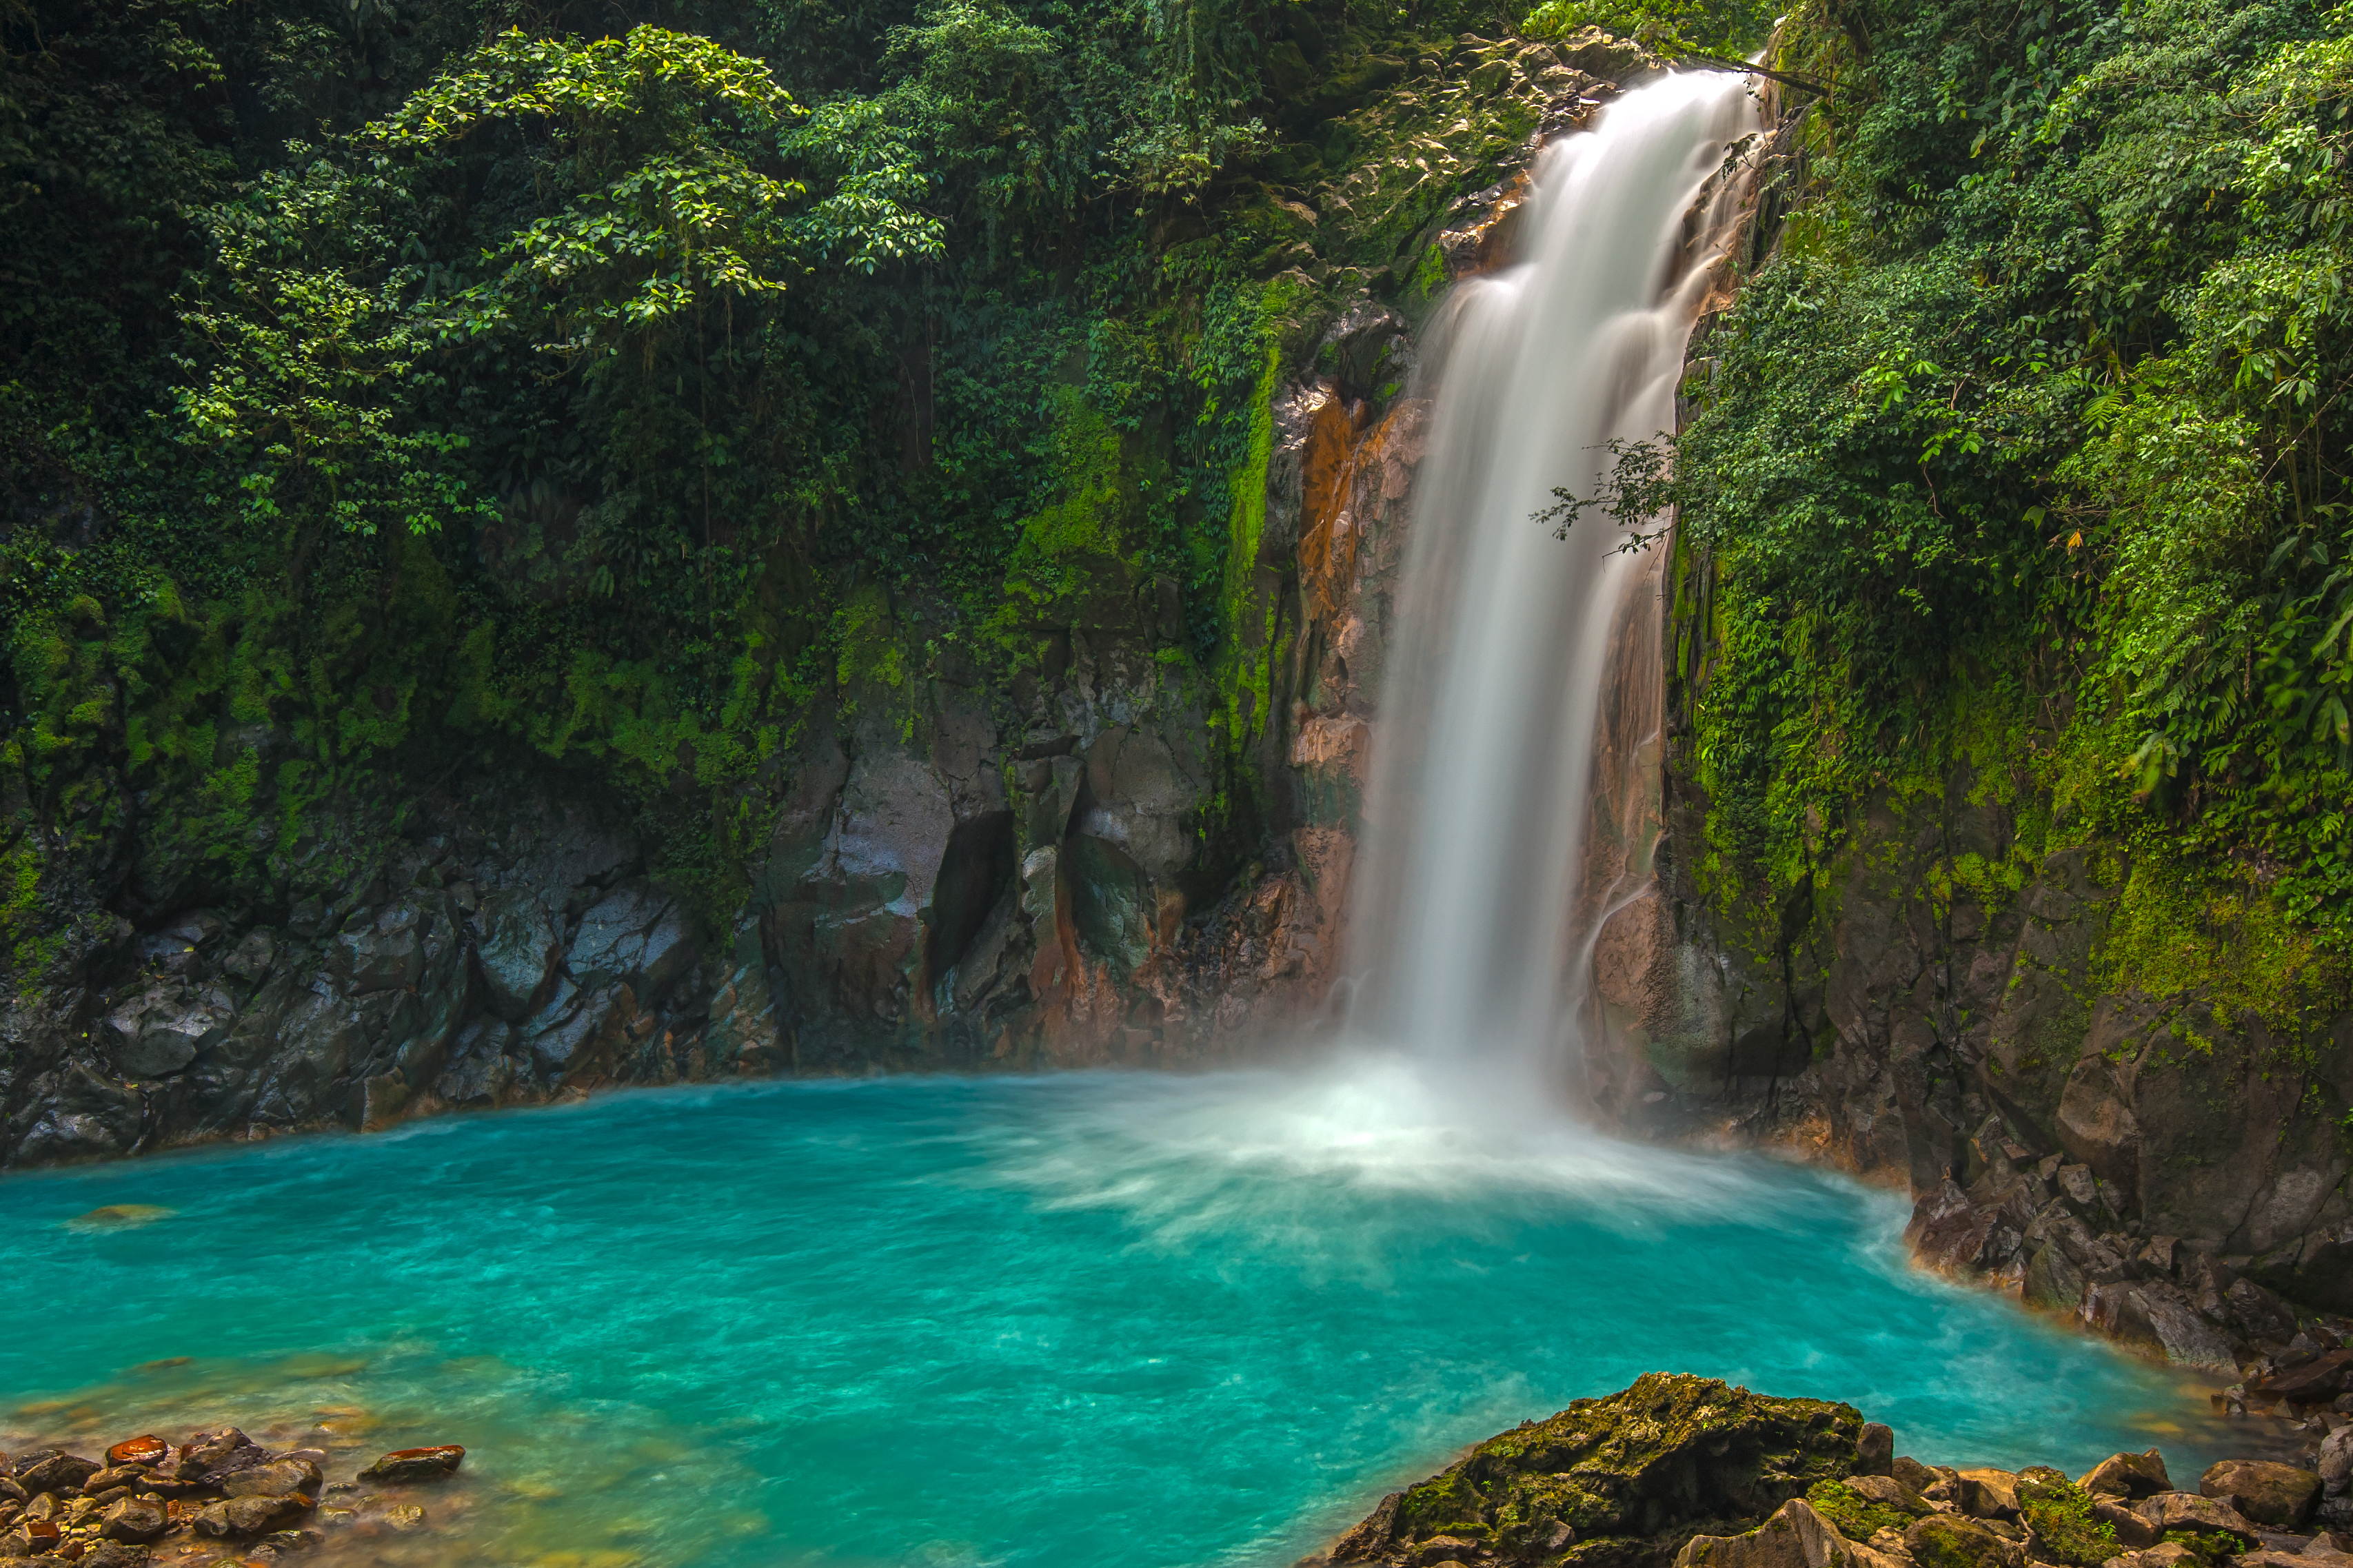 Rio Celeste Waterfall photographed in Co